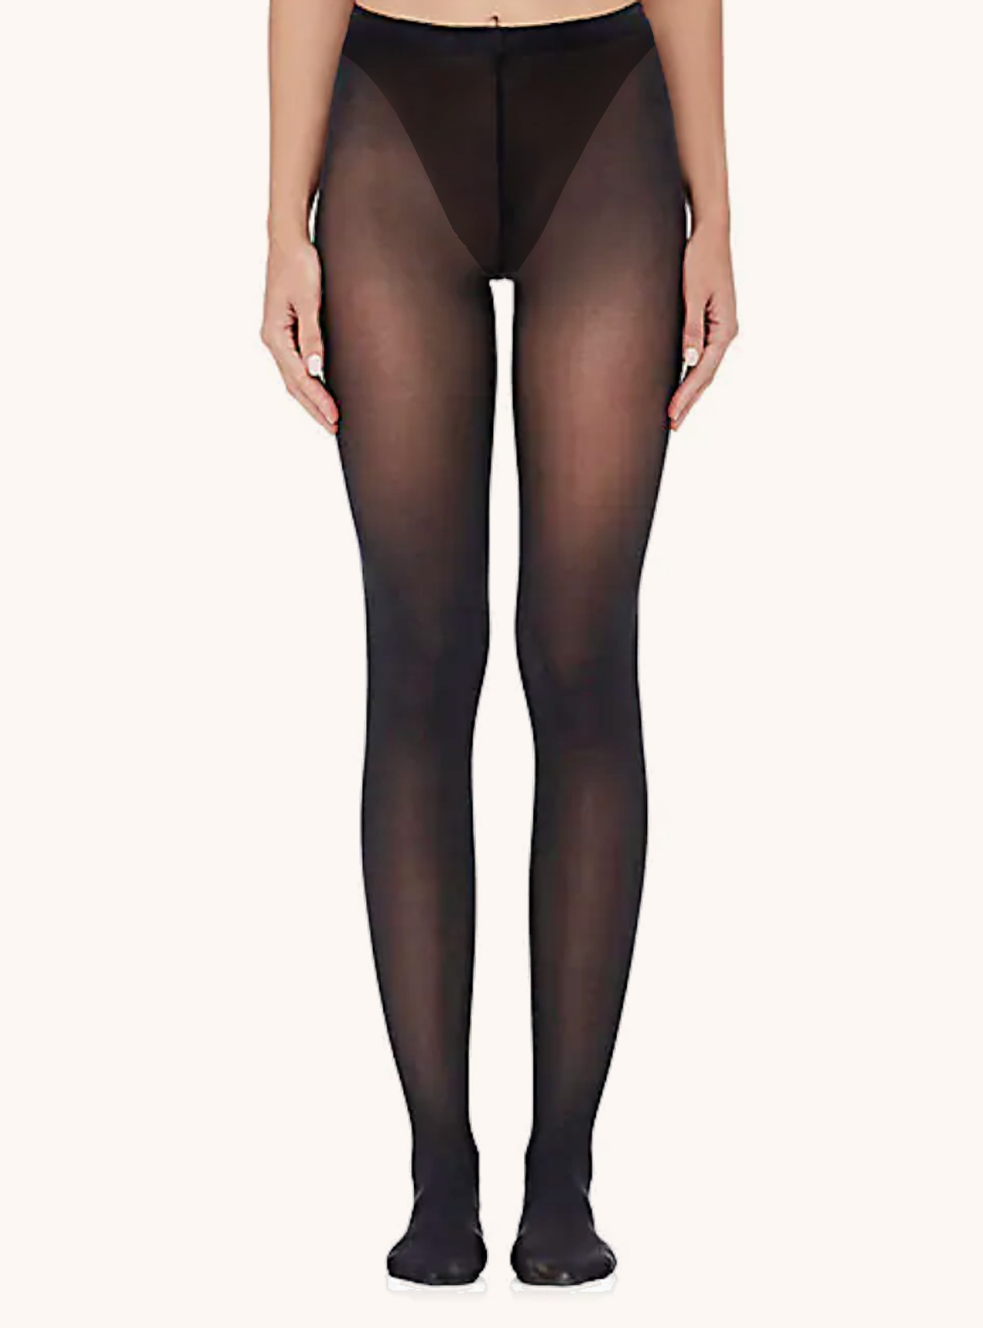 Sheer Italian Tights With Control   - Black